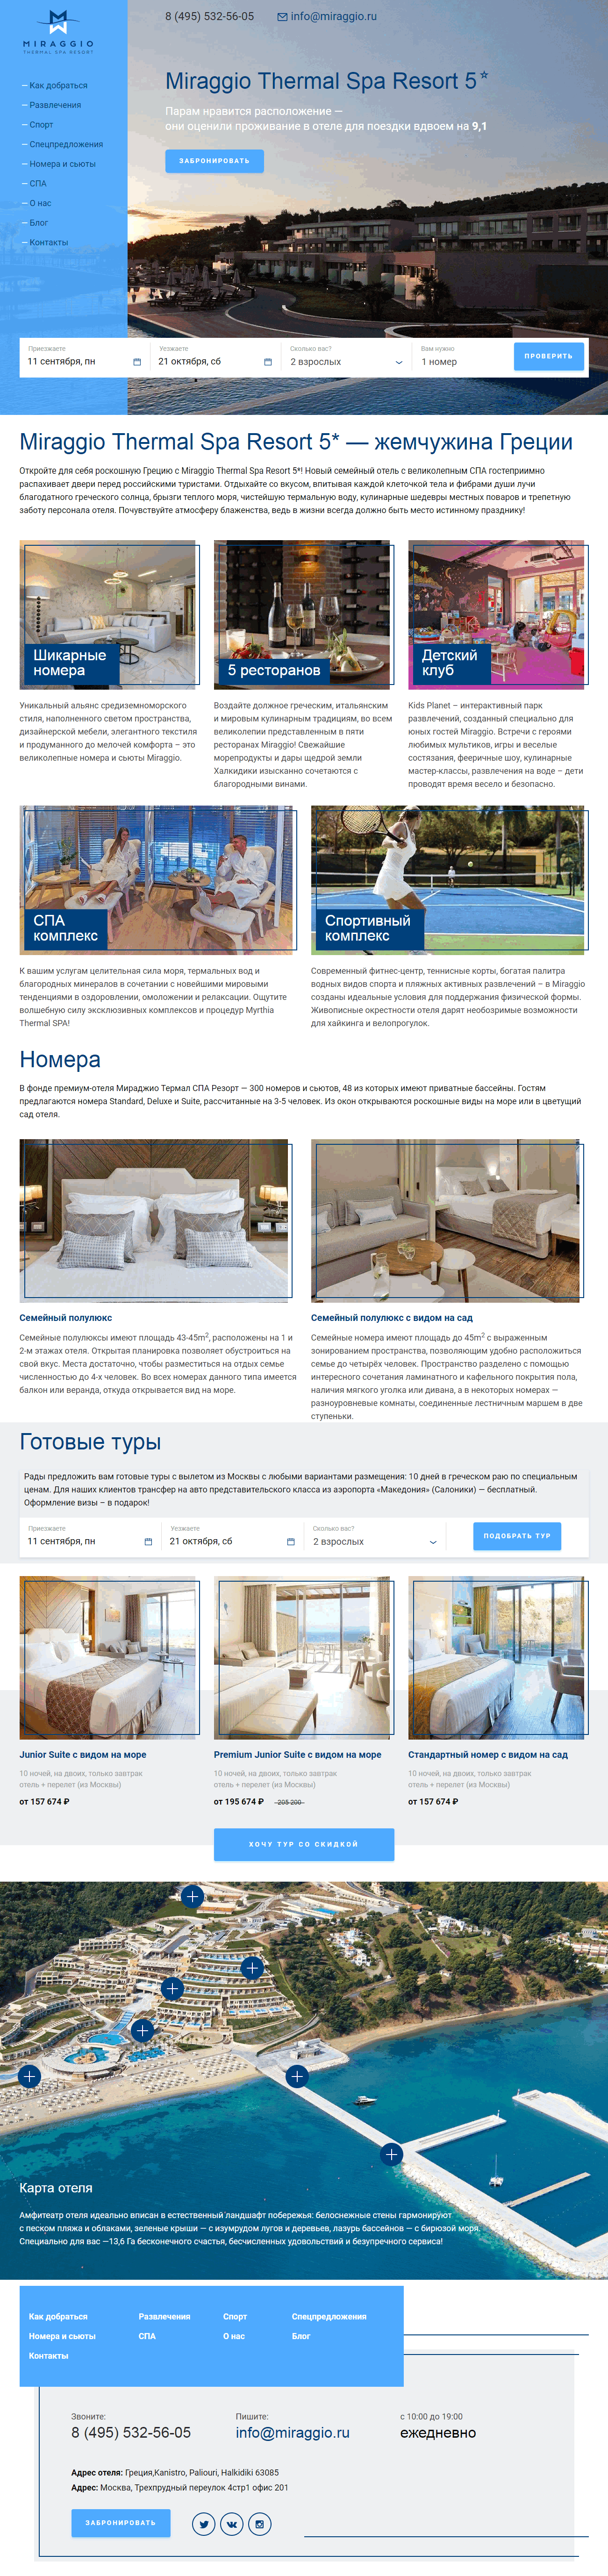 Отель Miraggio Thermal Spa Resort